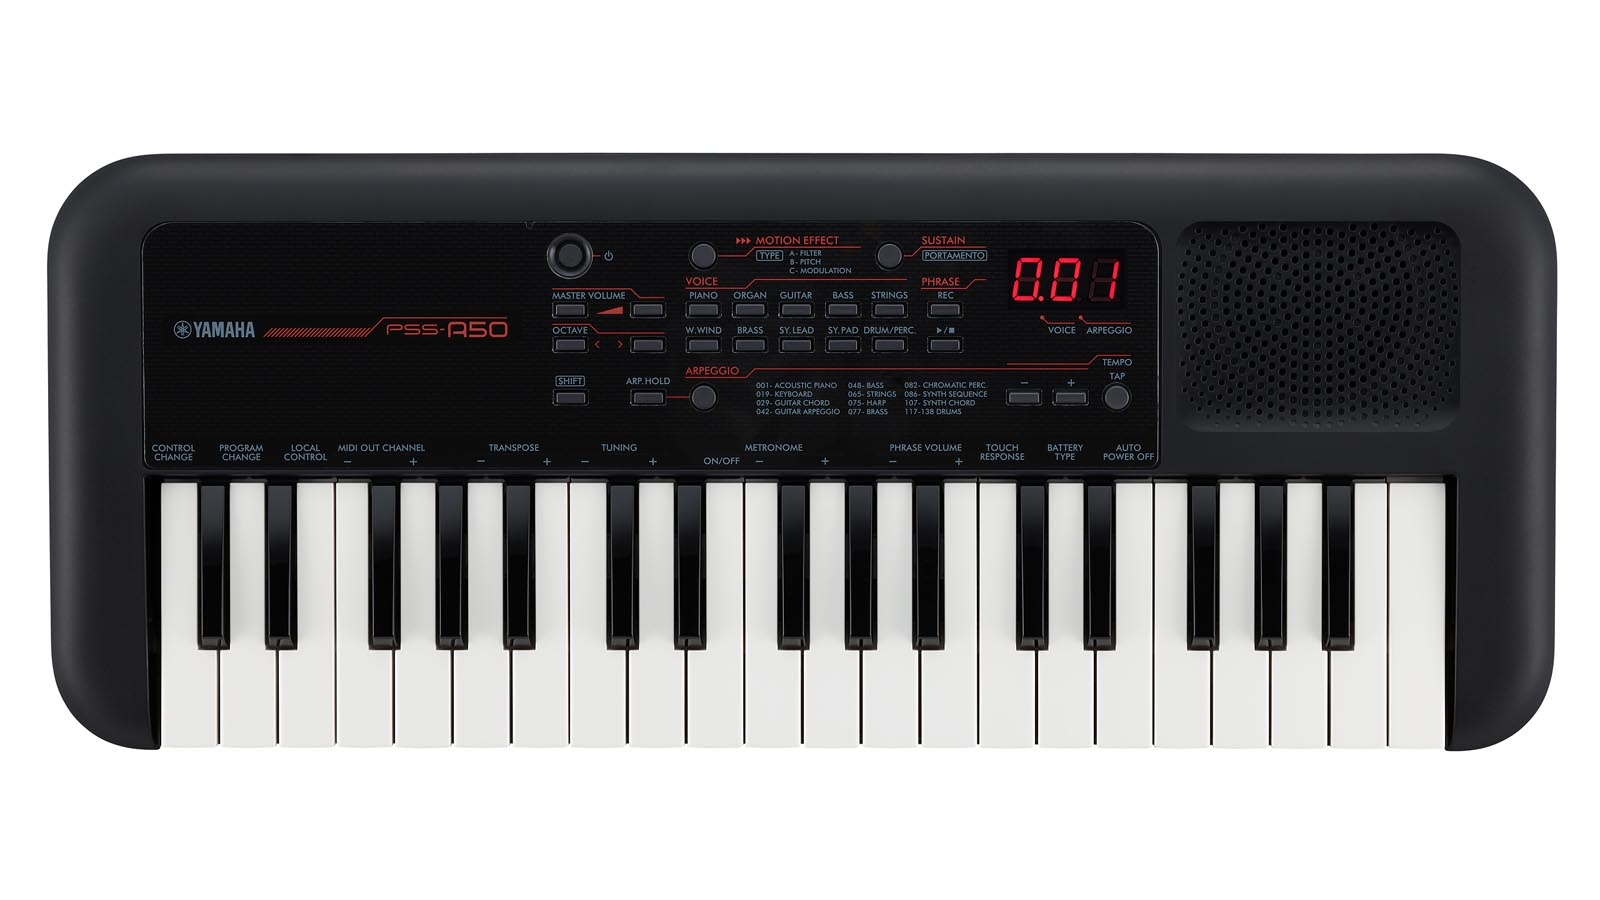 Yamaha PSS-A50 Mini Keyboard